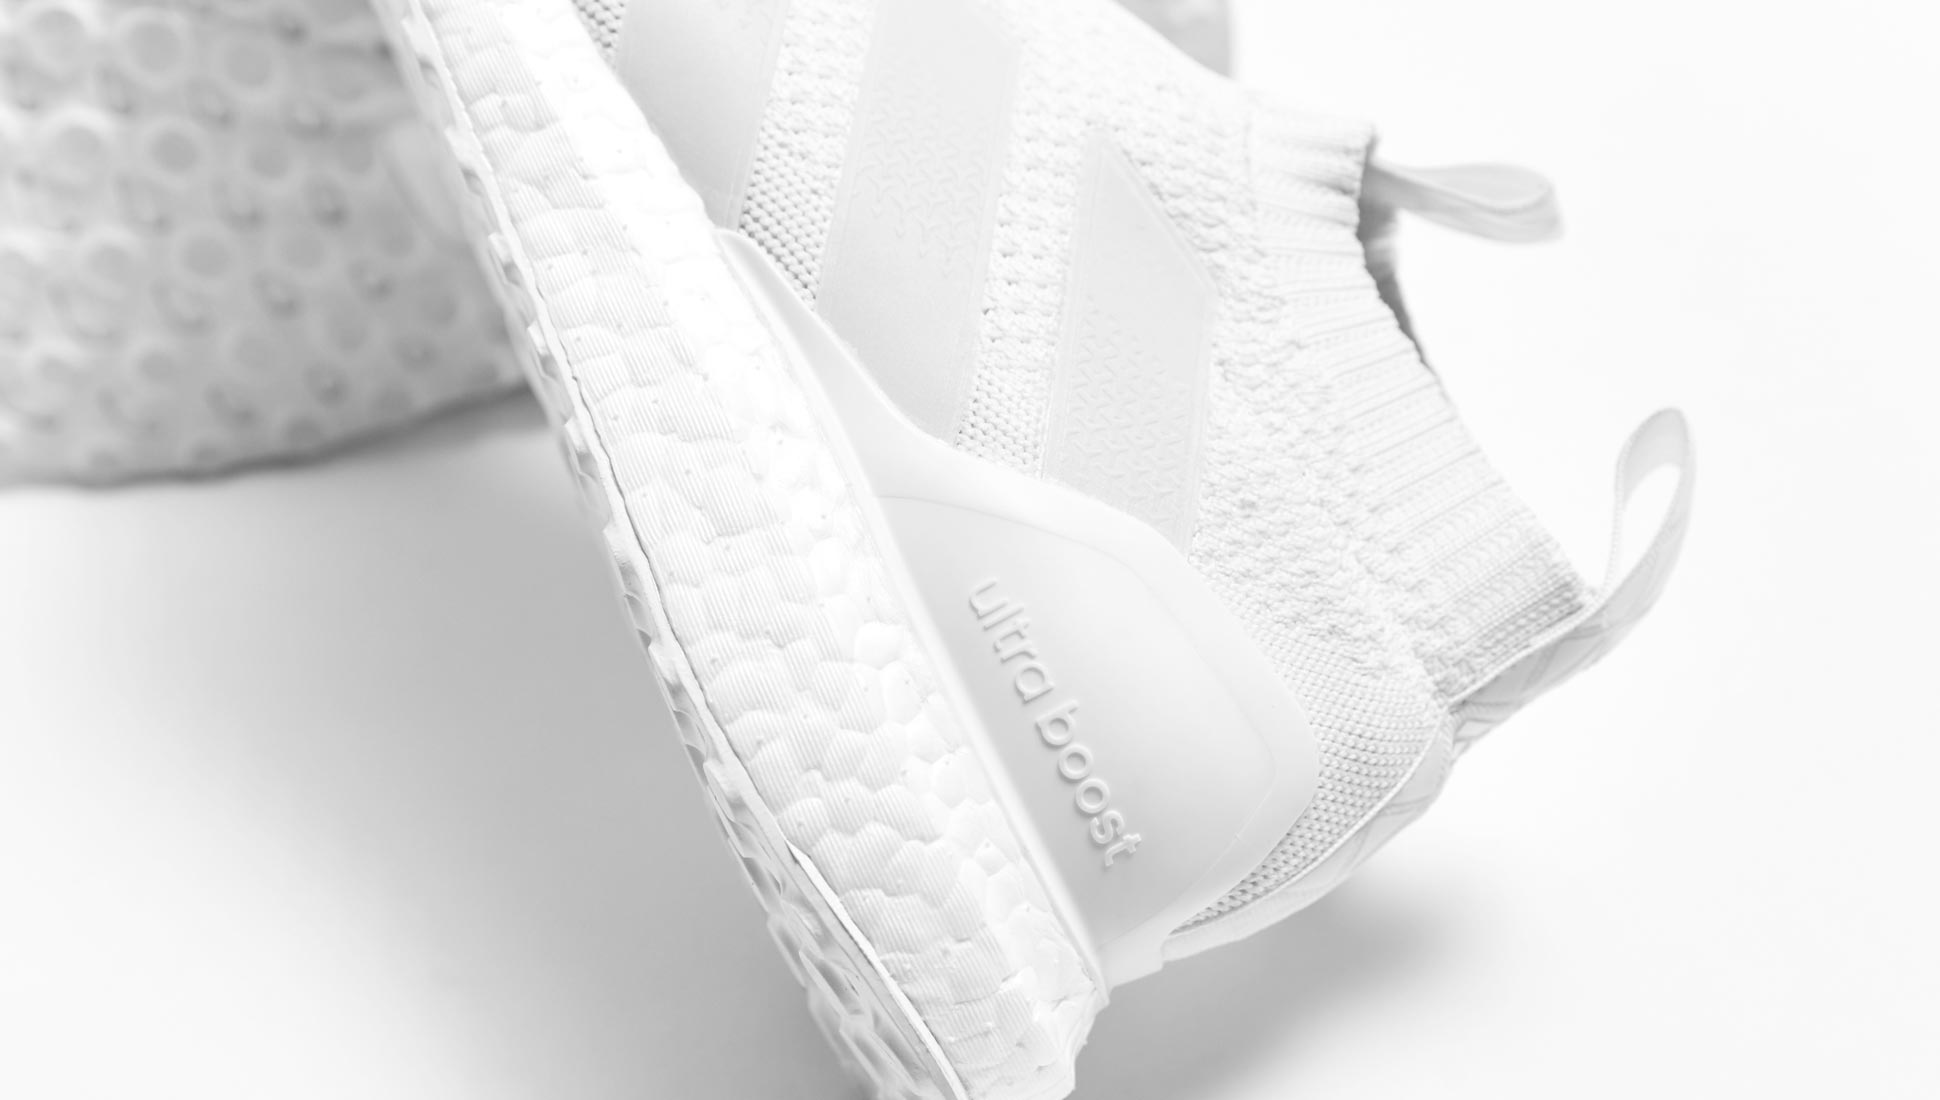 Adidas Ace 16 PureConttrol Ultra Boost Shoes explained